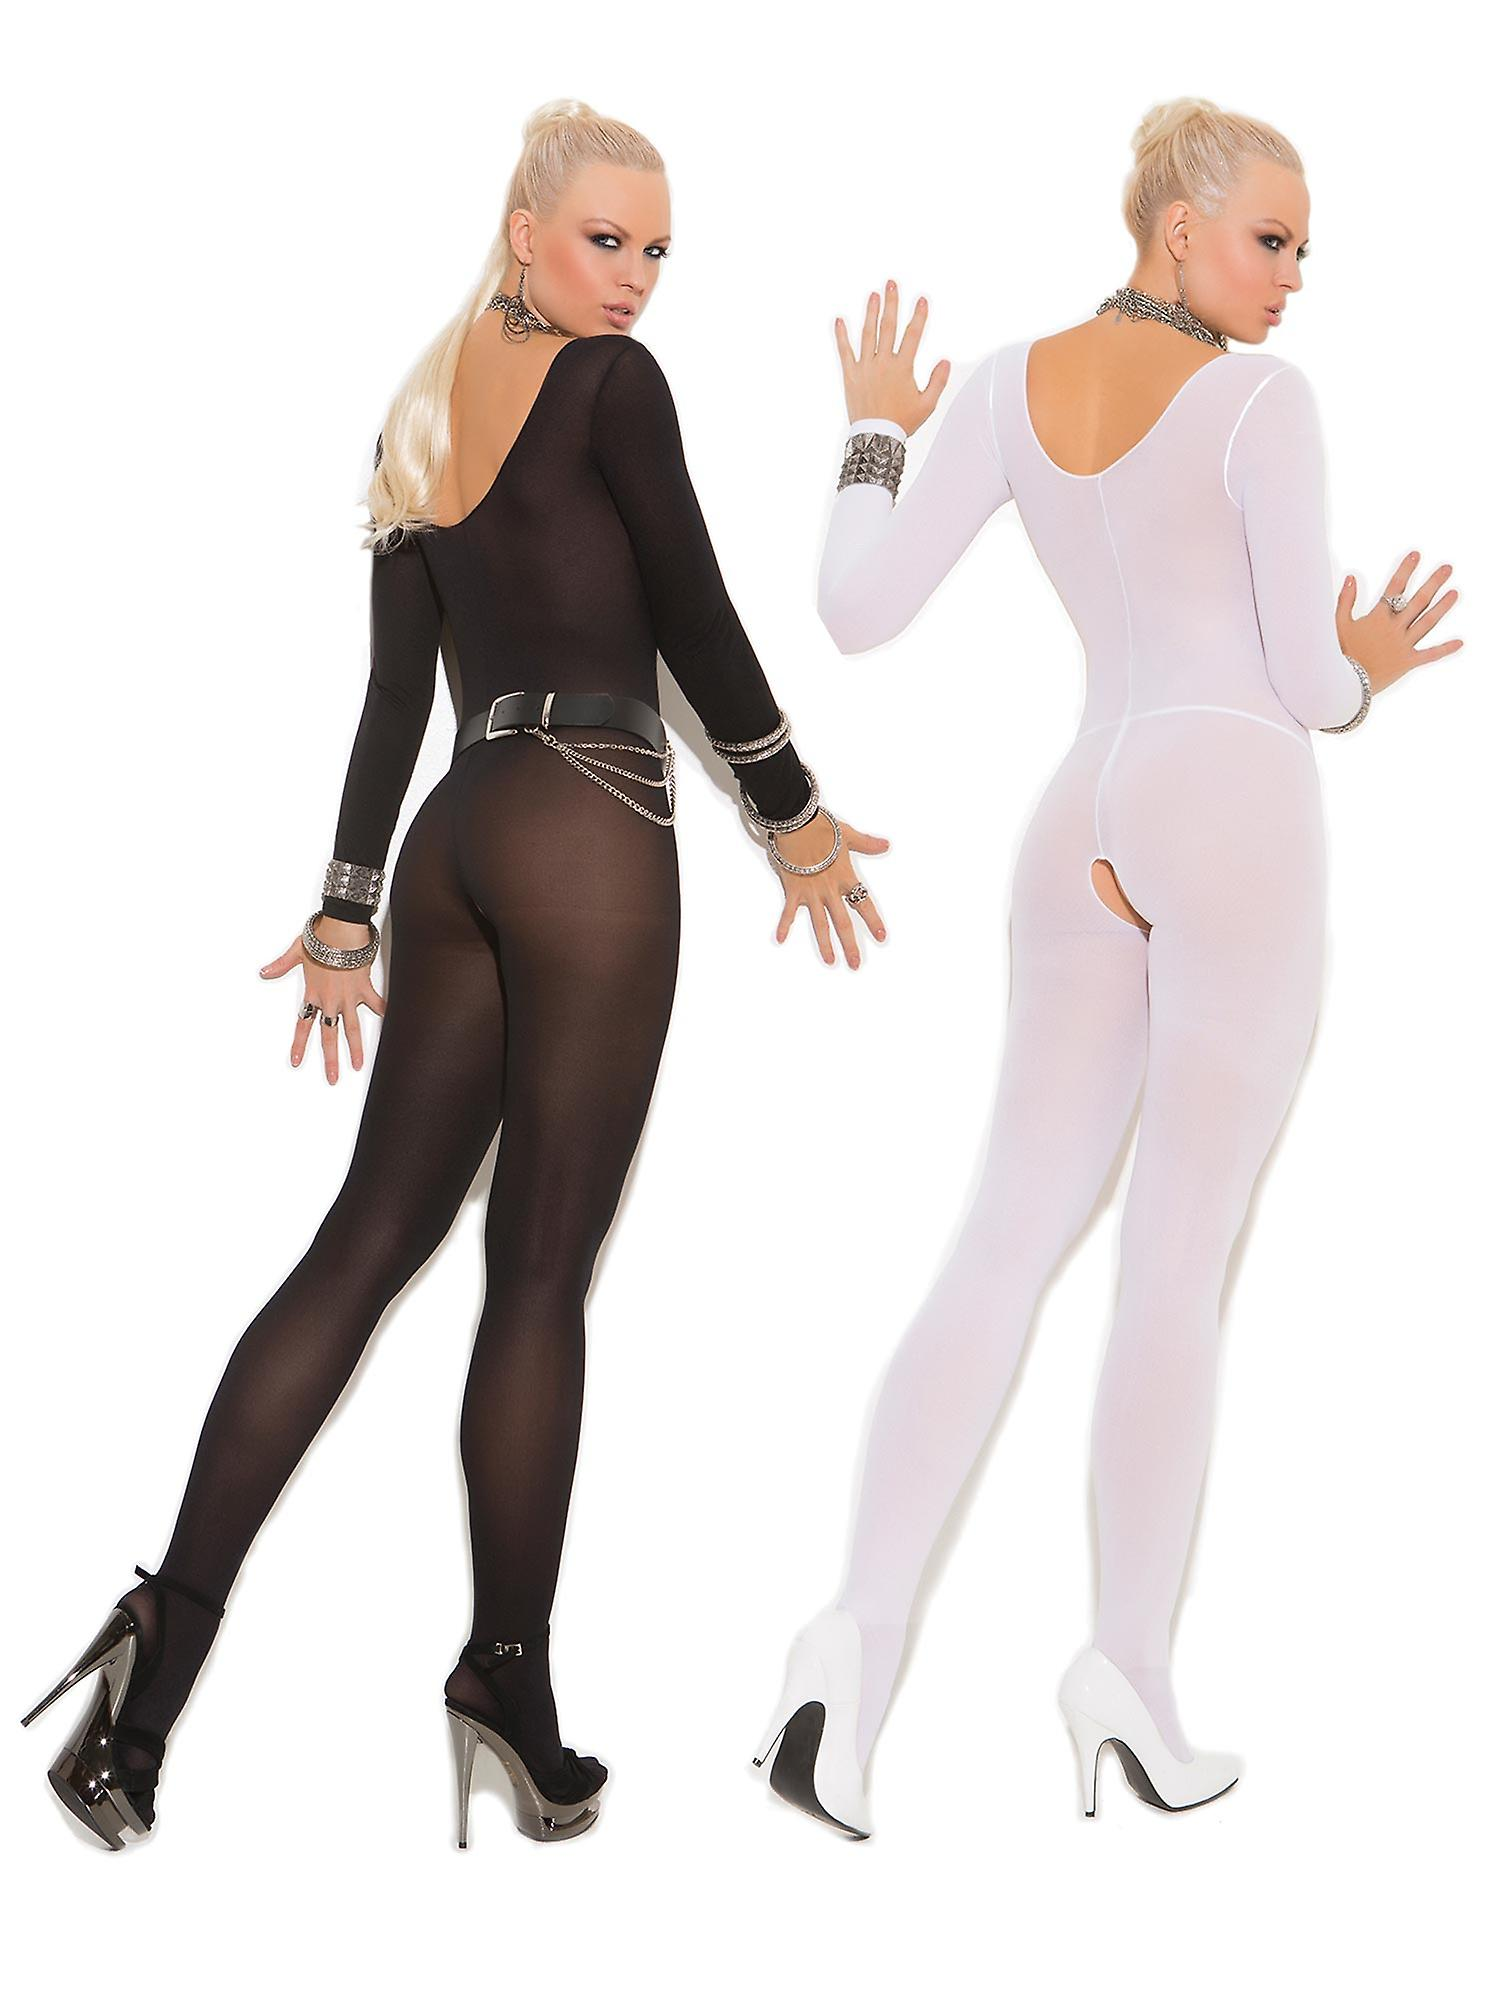 fba6e0e06df Womens Bodystocking Set- Sexy Long Sleeved Sheer Crotchless Bodysuit  Lingerie Pack of 2